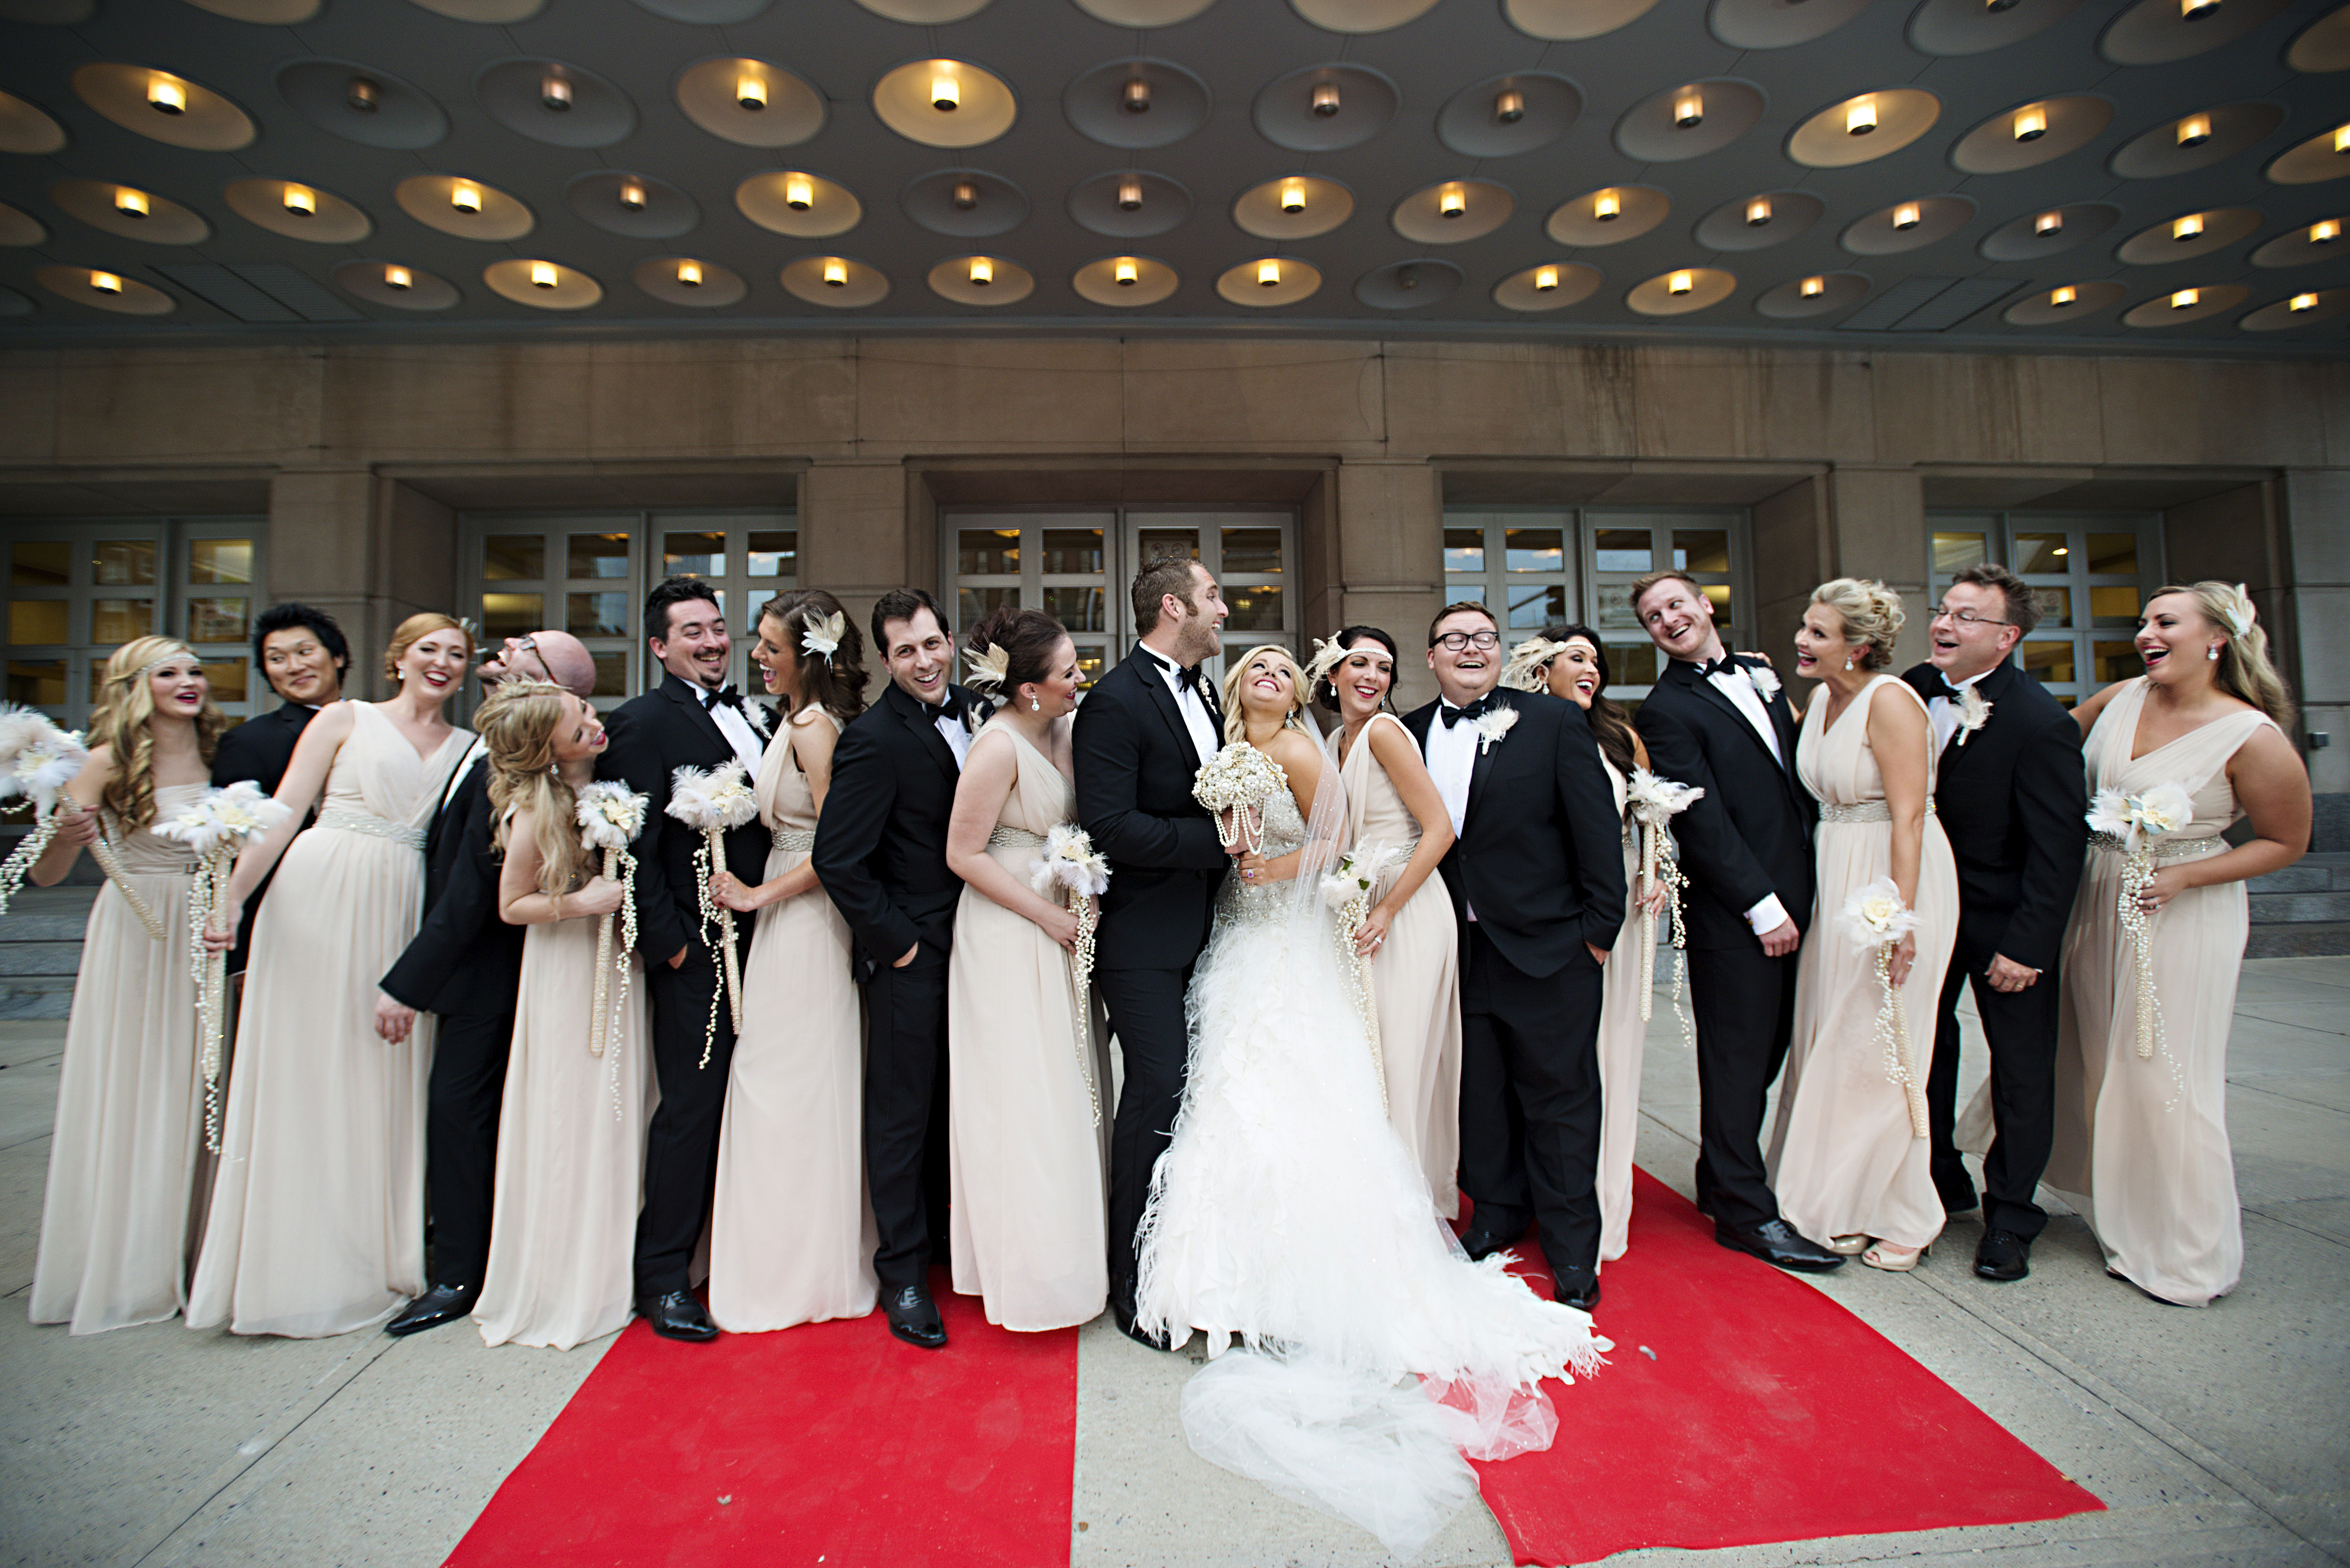 Formal champagne bridesmaid dresses and black groomsmen tuxedos